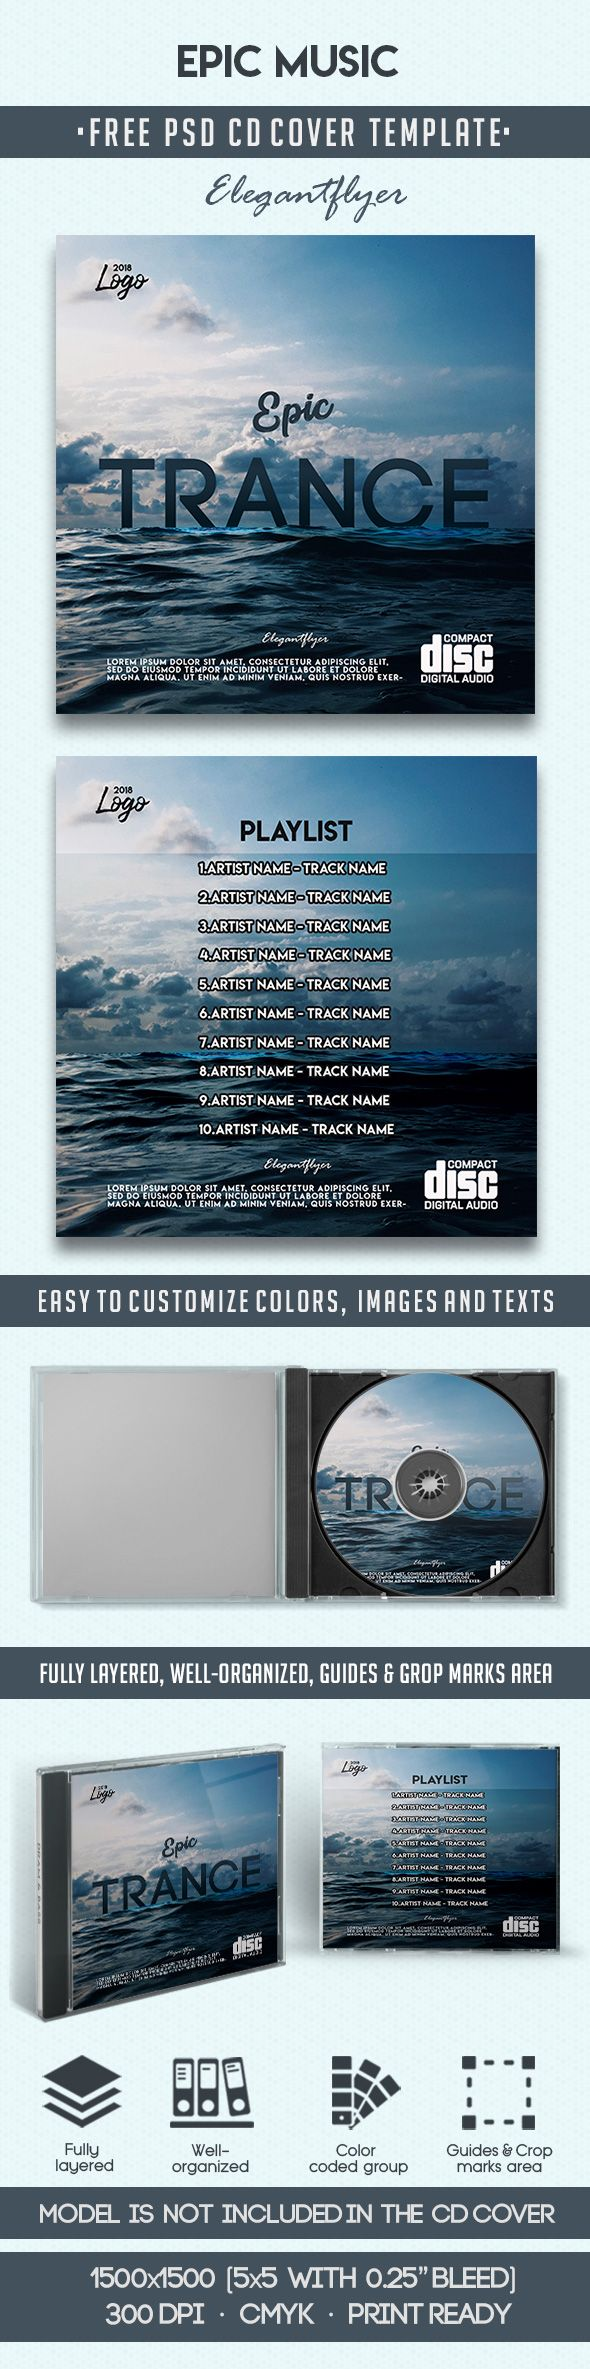 Epic Music Free Cd Template